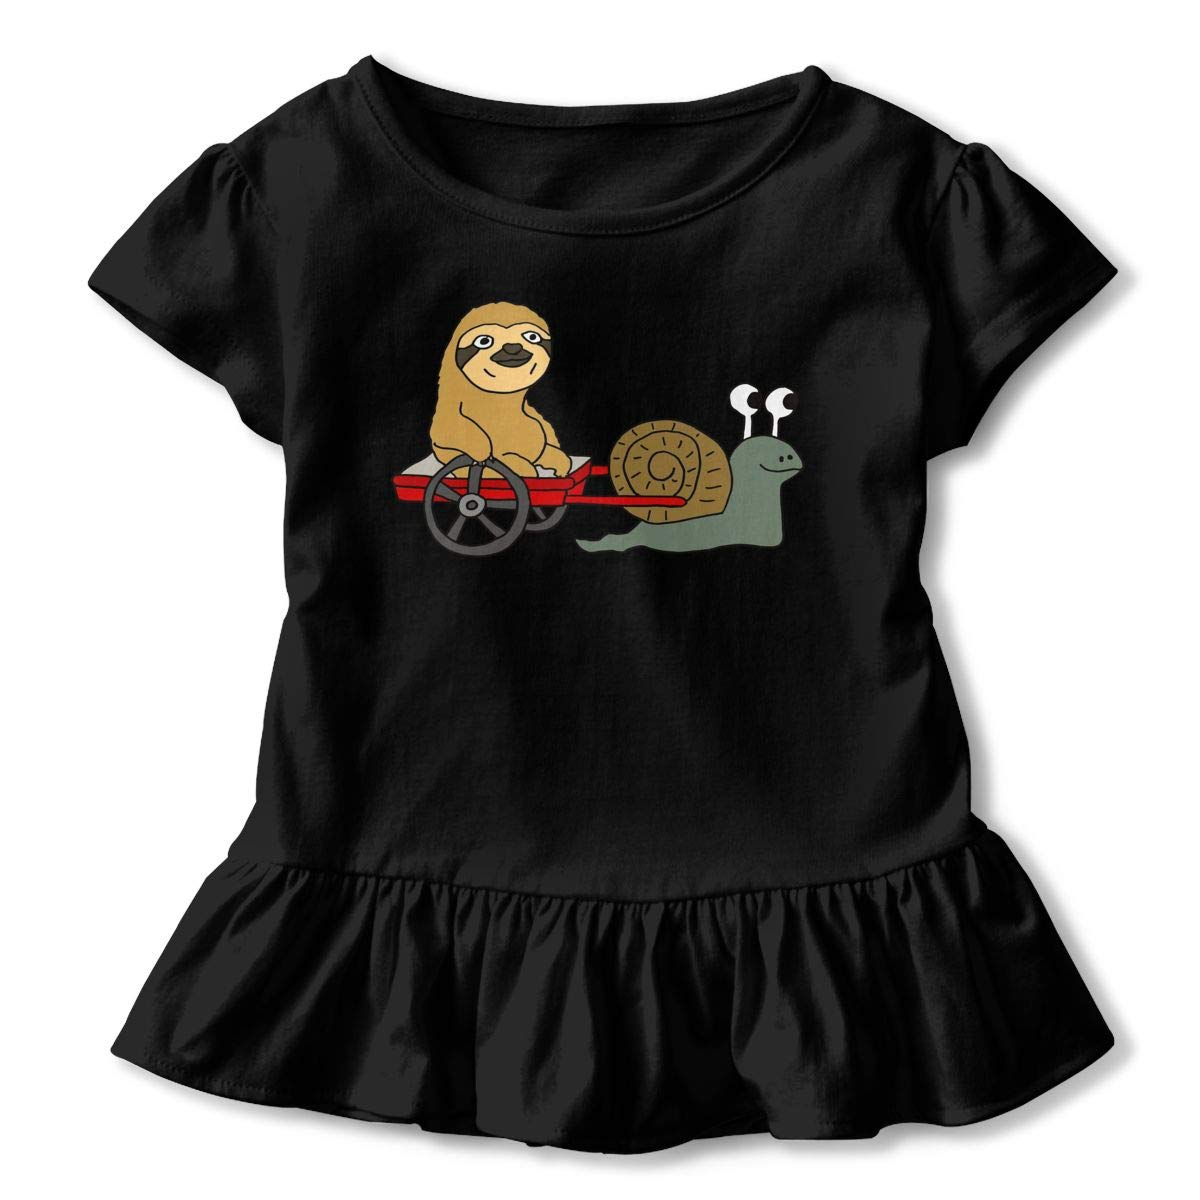 Funny Cool Sloth in Red Wagon Pulled by Snail Toddler//Infant Girls Short Sleeve Ruffles Shirt Tee Jersey for 2-6T